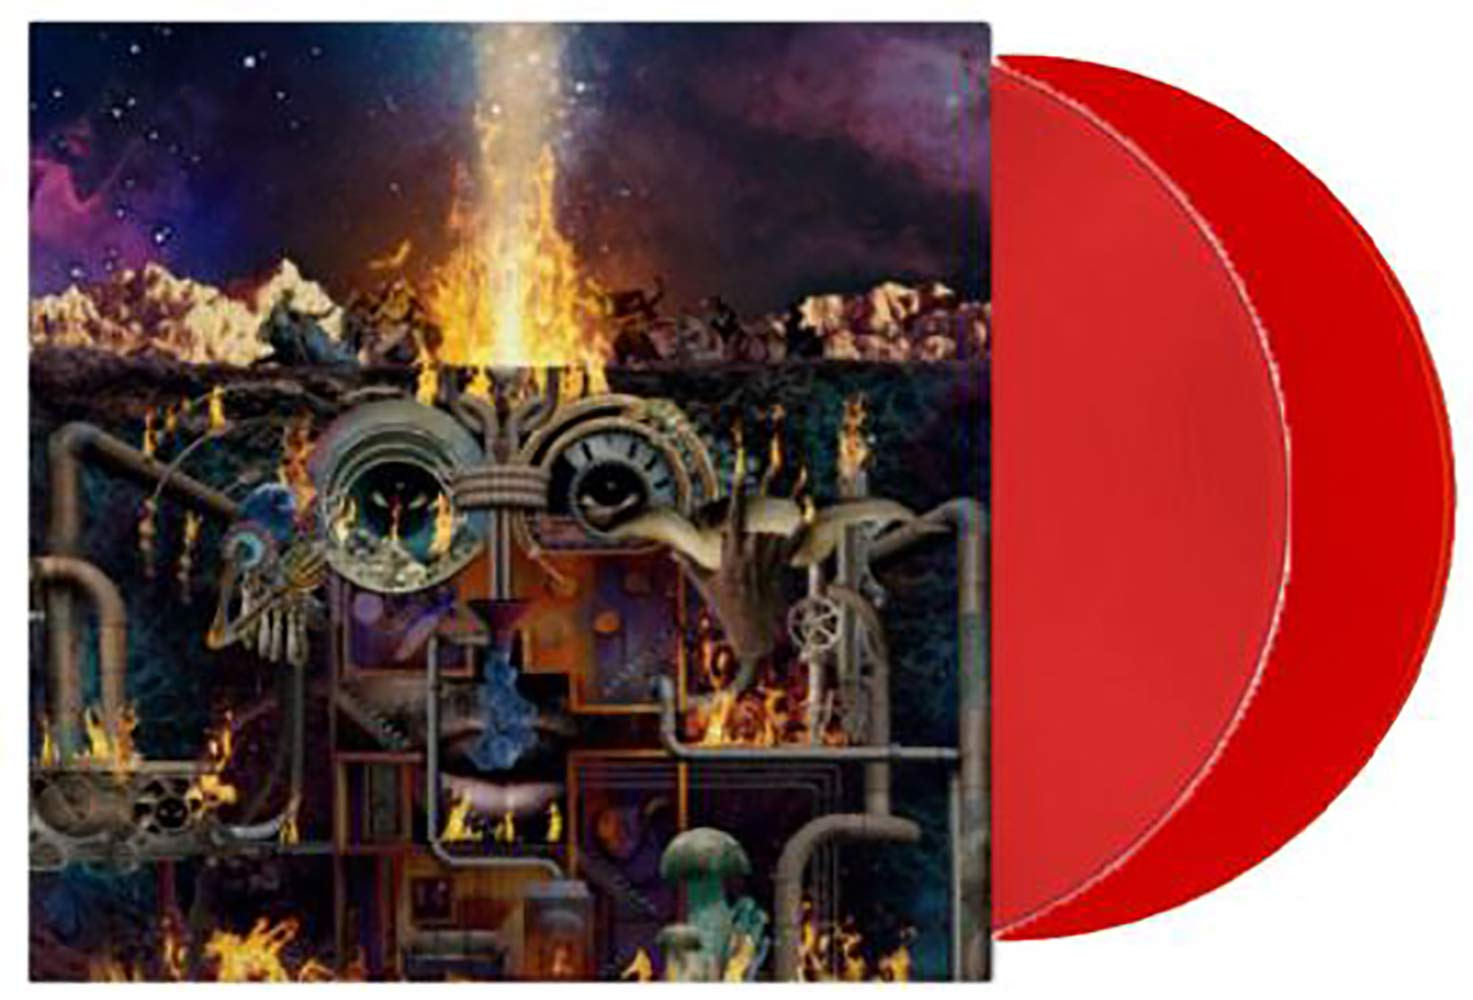 Flamagra - Exclusive Limited Edition Red 2XLP Vinyl [Condition-VG+NM]